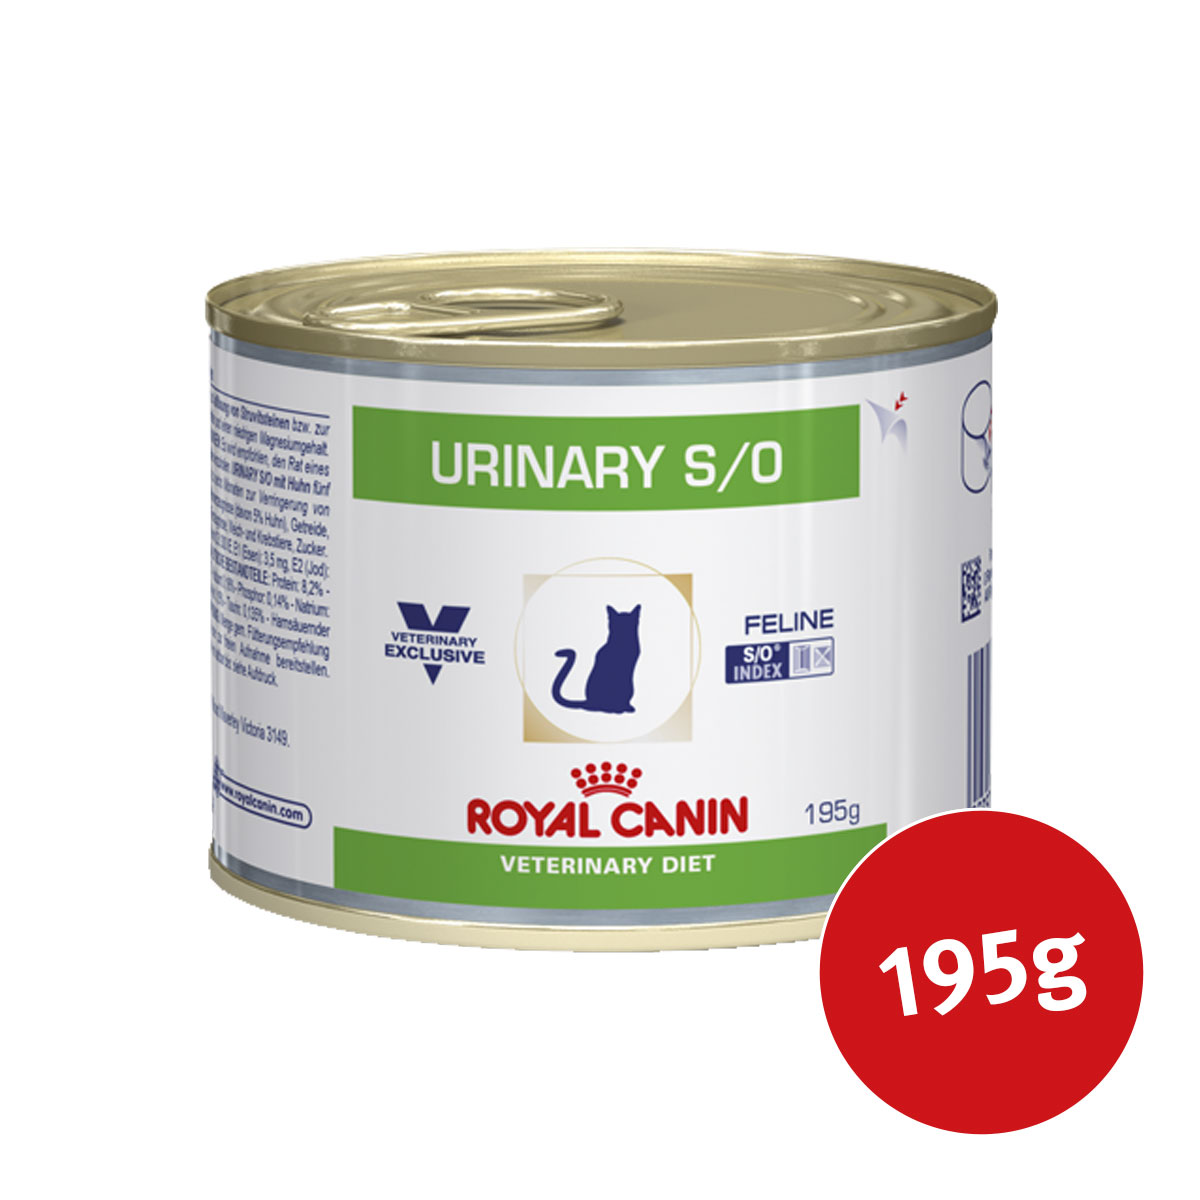 royal canin vet diet nassfutter urinary s o 195 g bei zooroyal. Black Bedroom Furniture Sets. Home Design Ideas